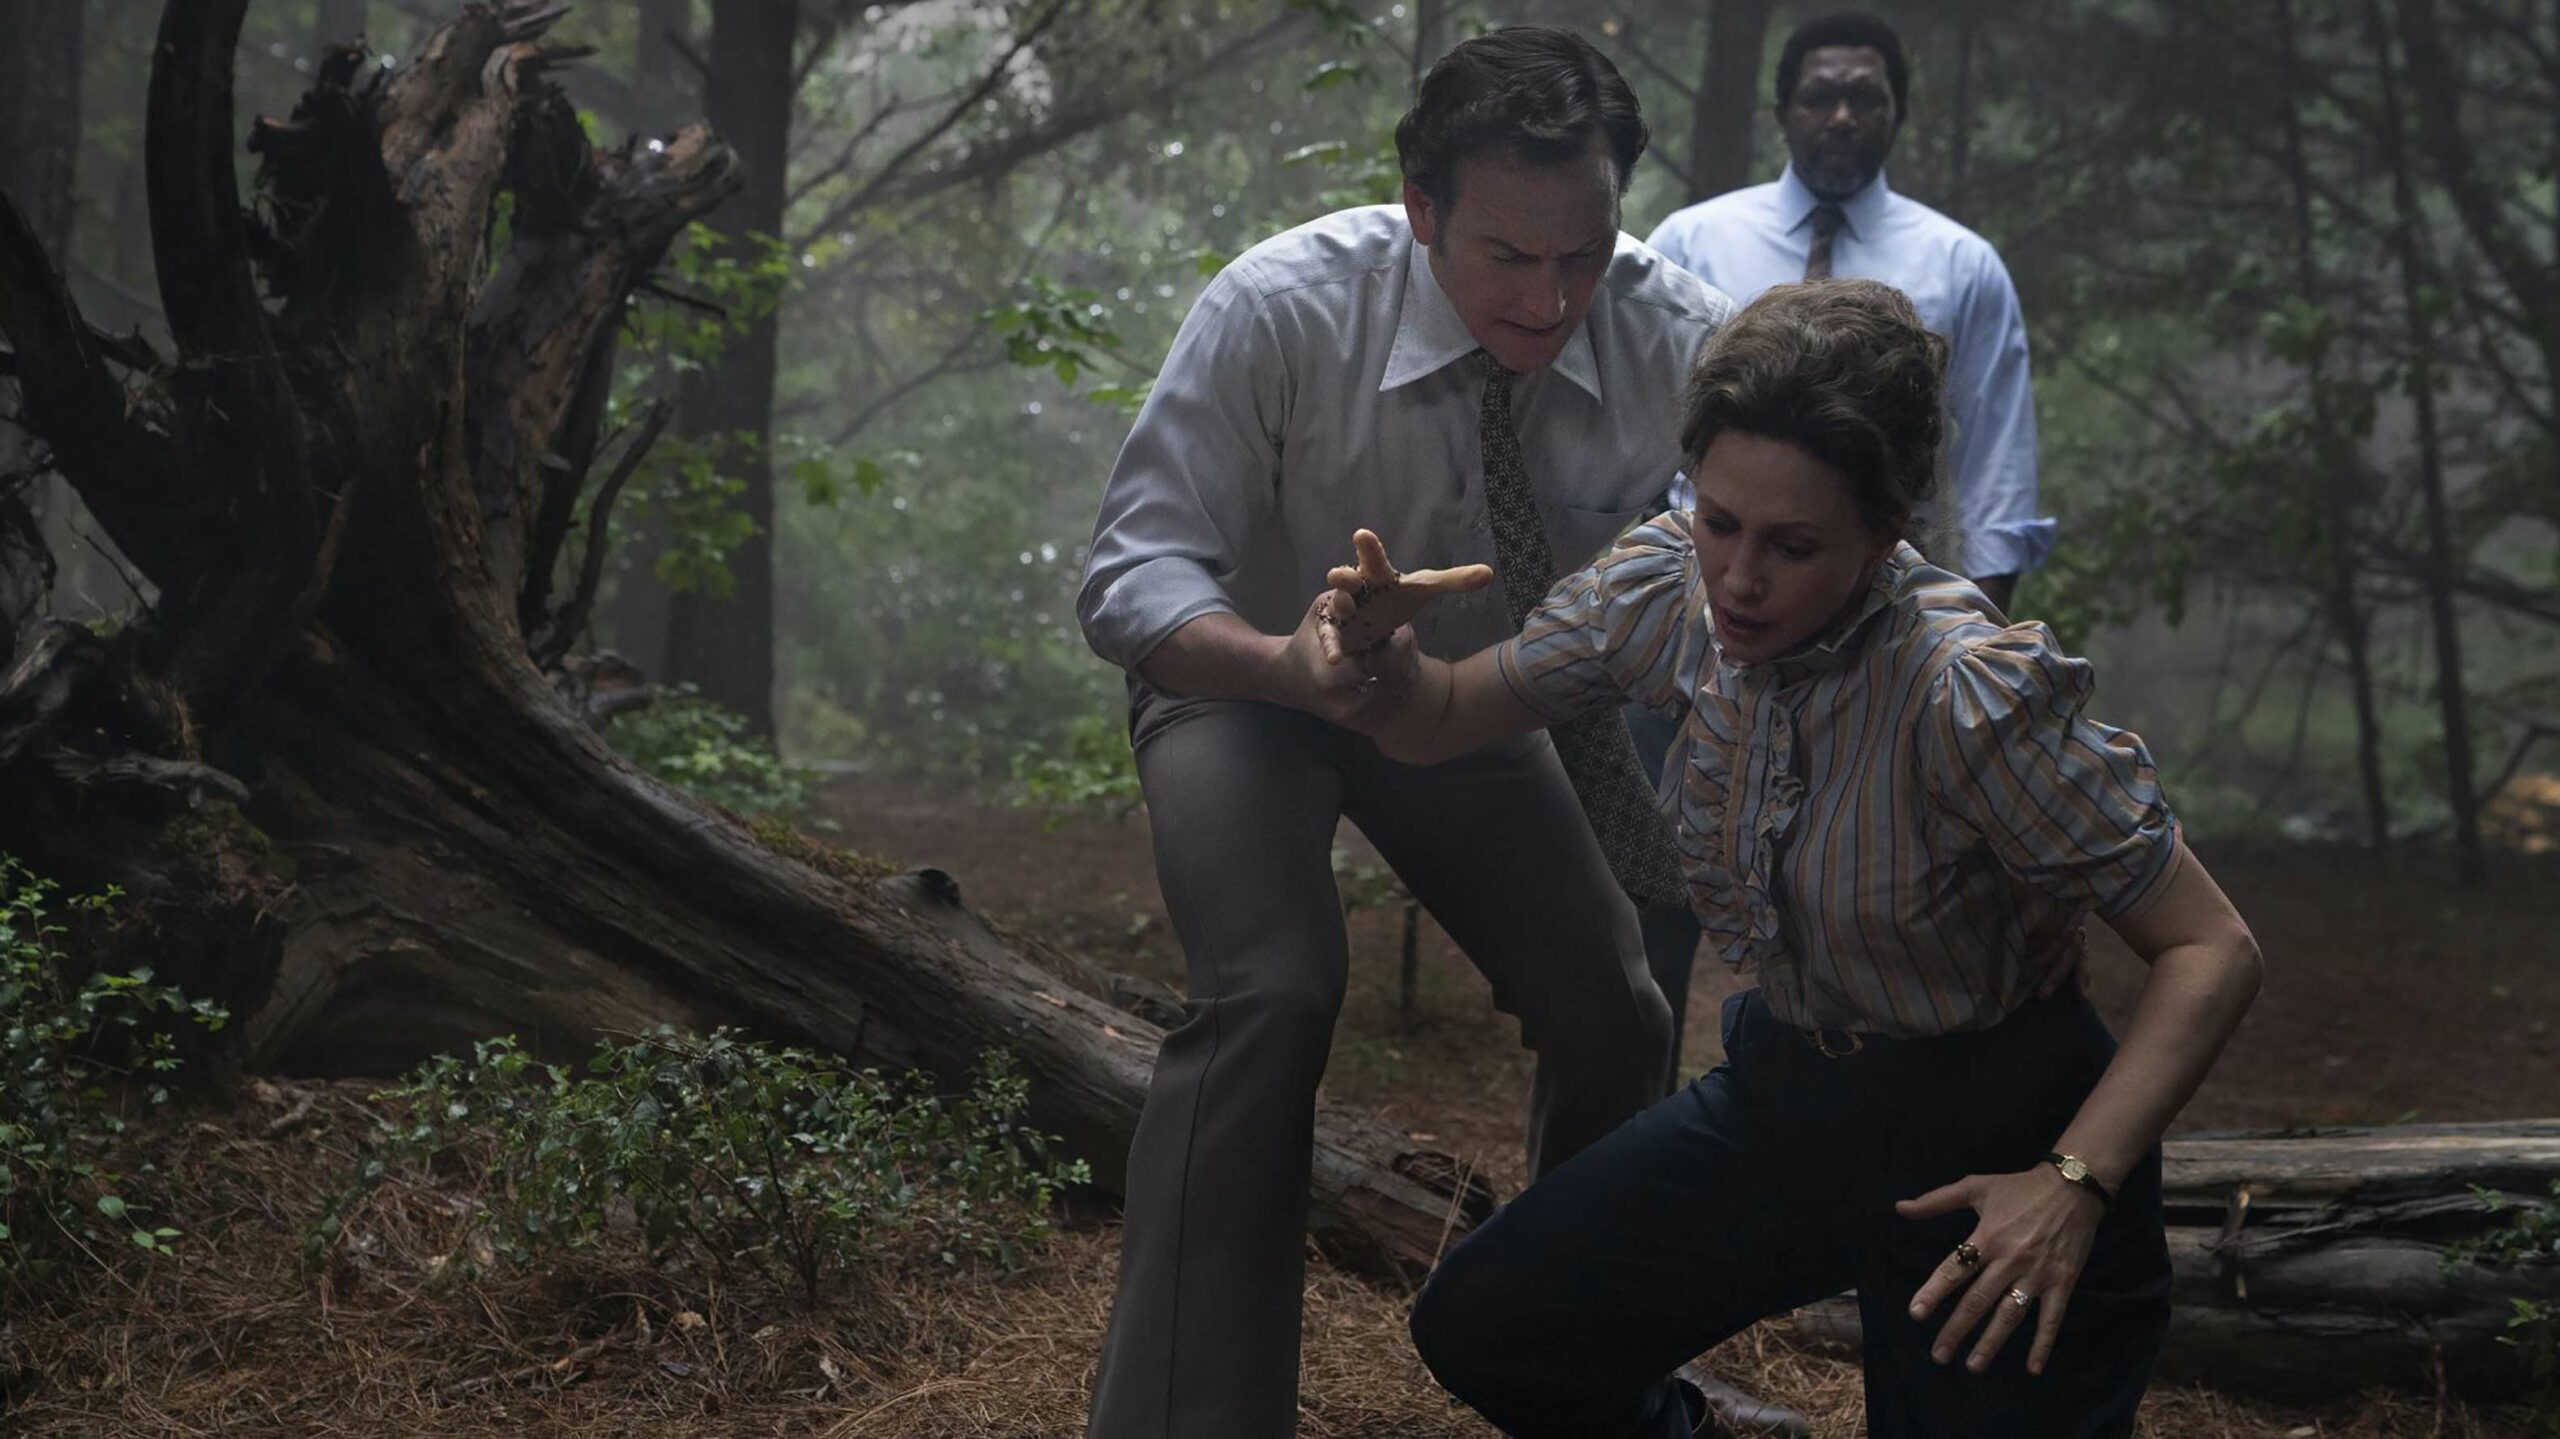 The Conjuring: The Devil Made Me Do It Ed and Lorraine Wilson in forest